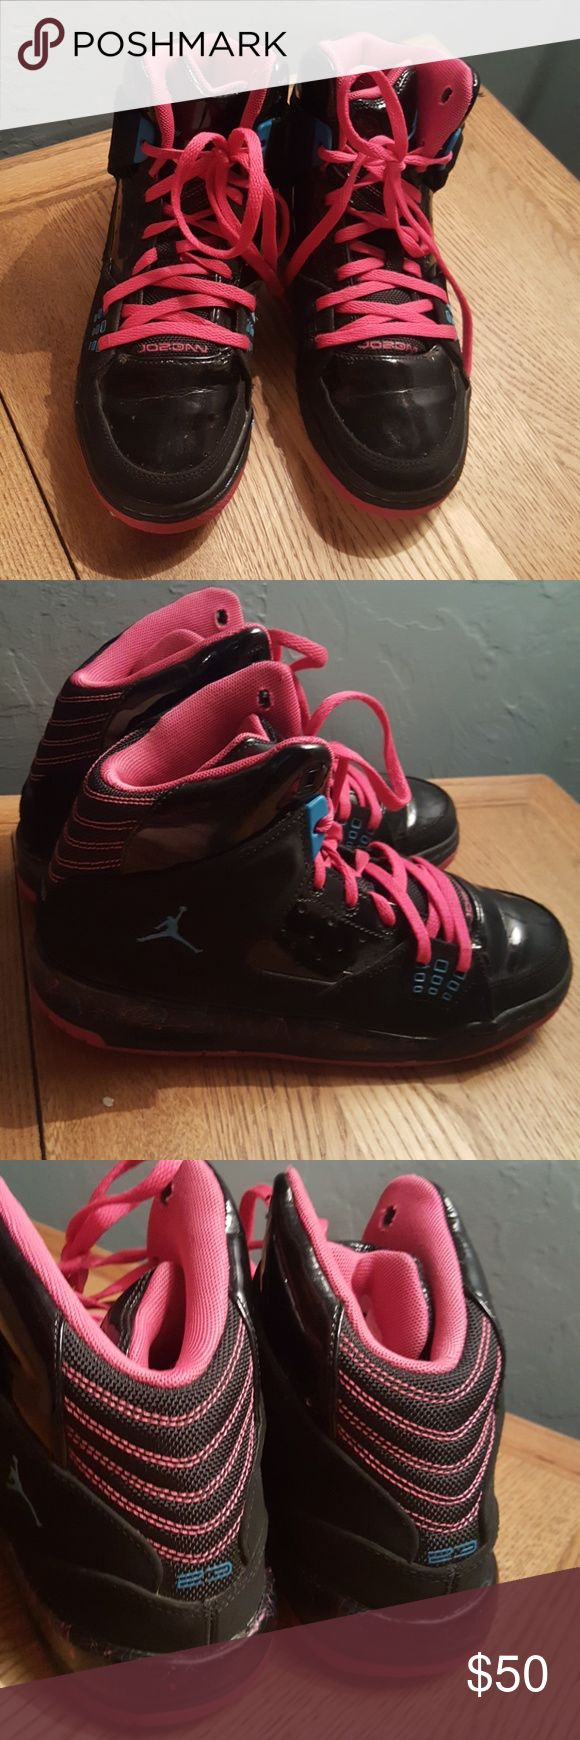 Nike Air Jordan Pink and Black Shoes In very good condition Size 6y Equivalent to Women's 8 and Men's 6 Jordan Shoes Athletic Shoes